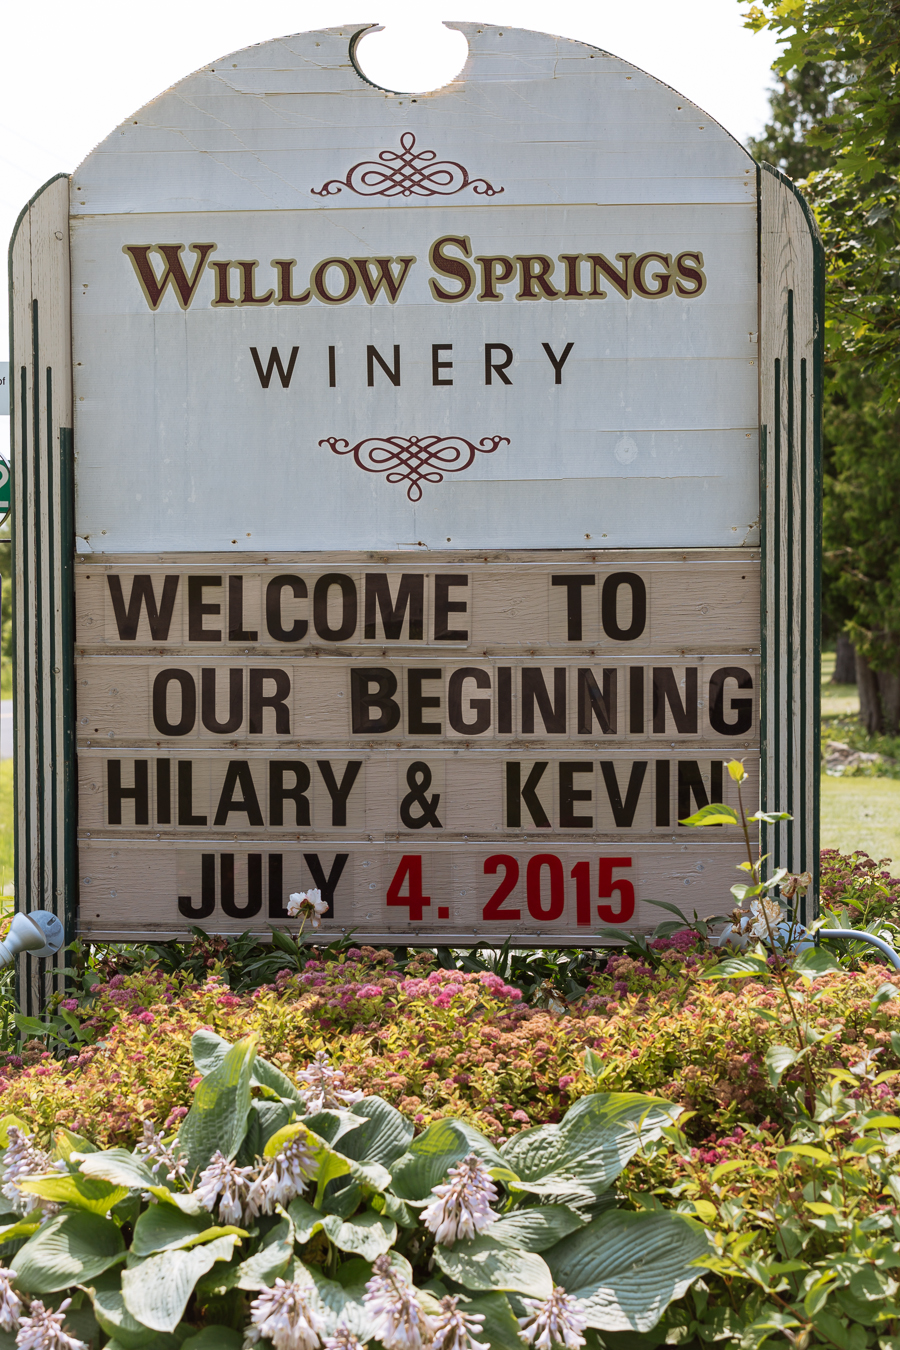 Willow Springs Winery Summer Wedding, Stouffville, Ontario: Hilary & Kevin, July 4, 2015